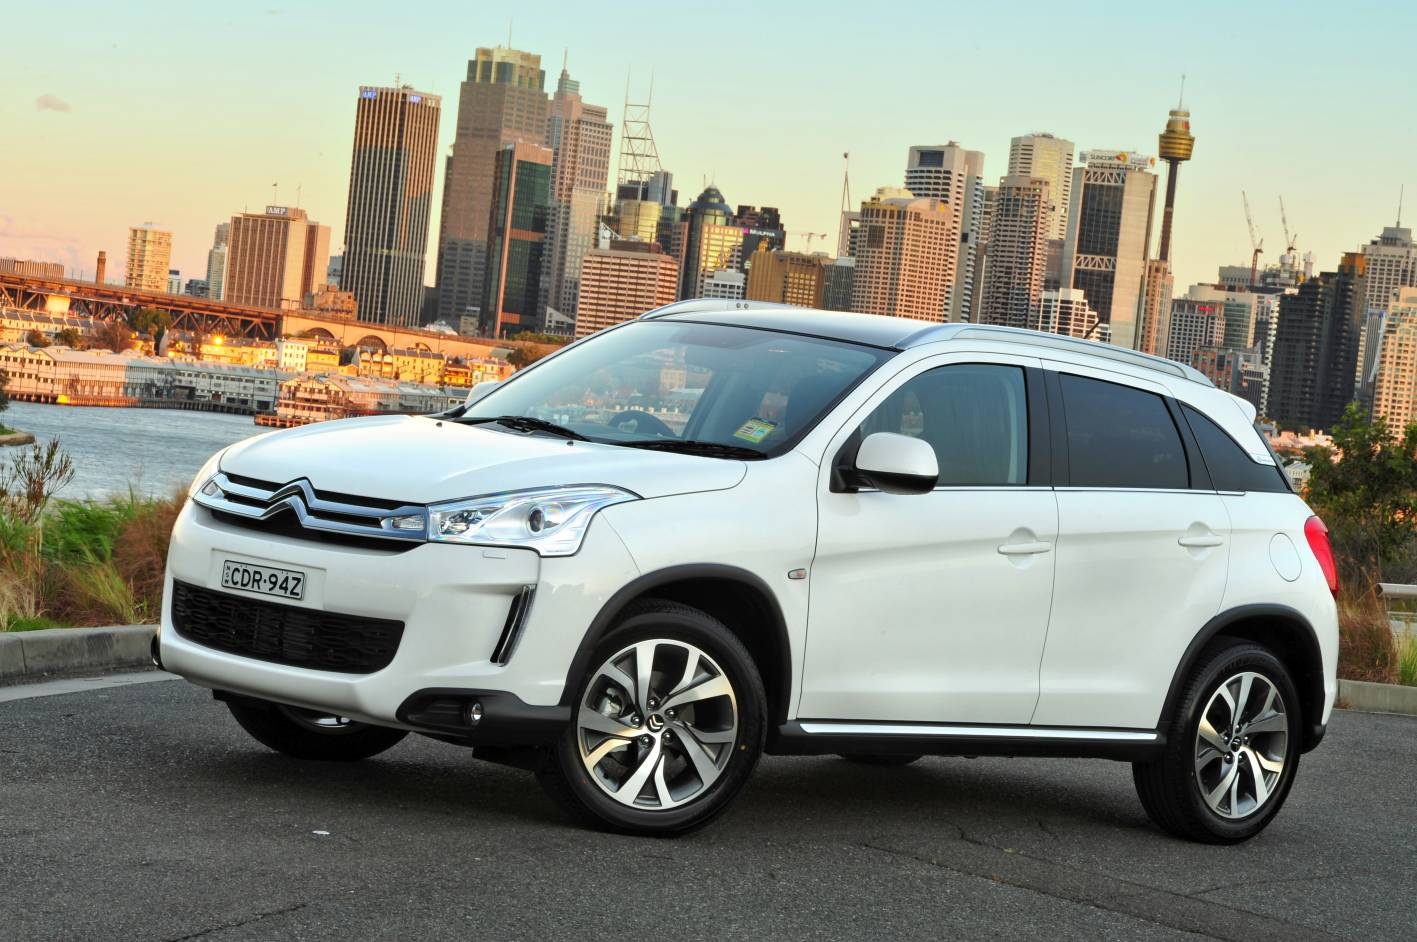 citroen cars news c4 aircross awd added to lineup. Black Bedroom Furniture Sets. Home Design Ideas